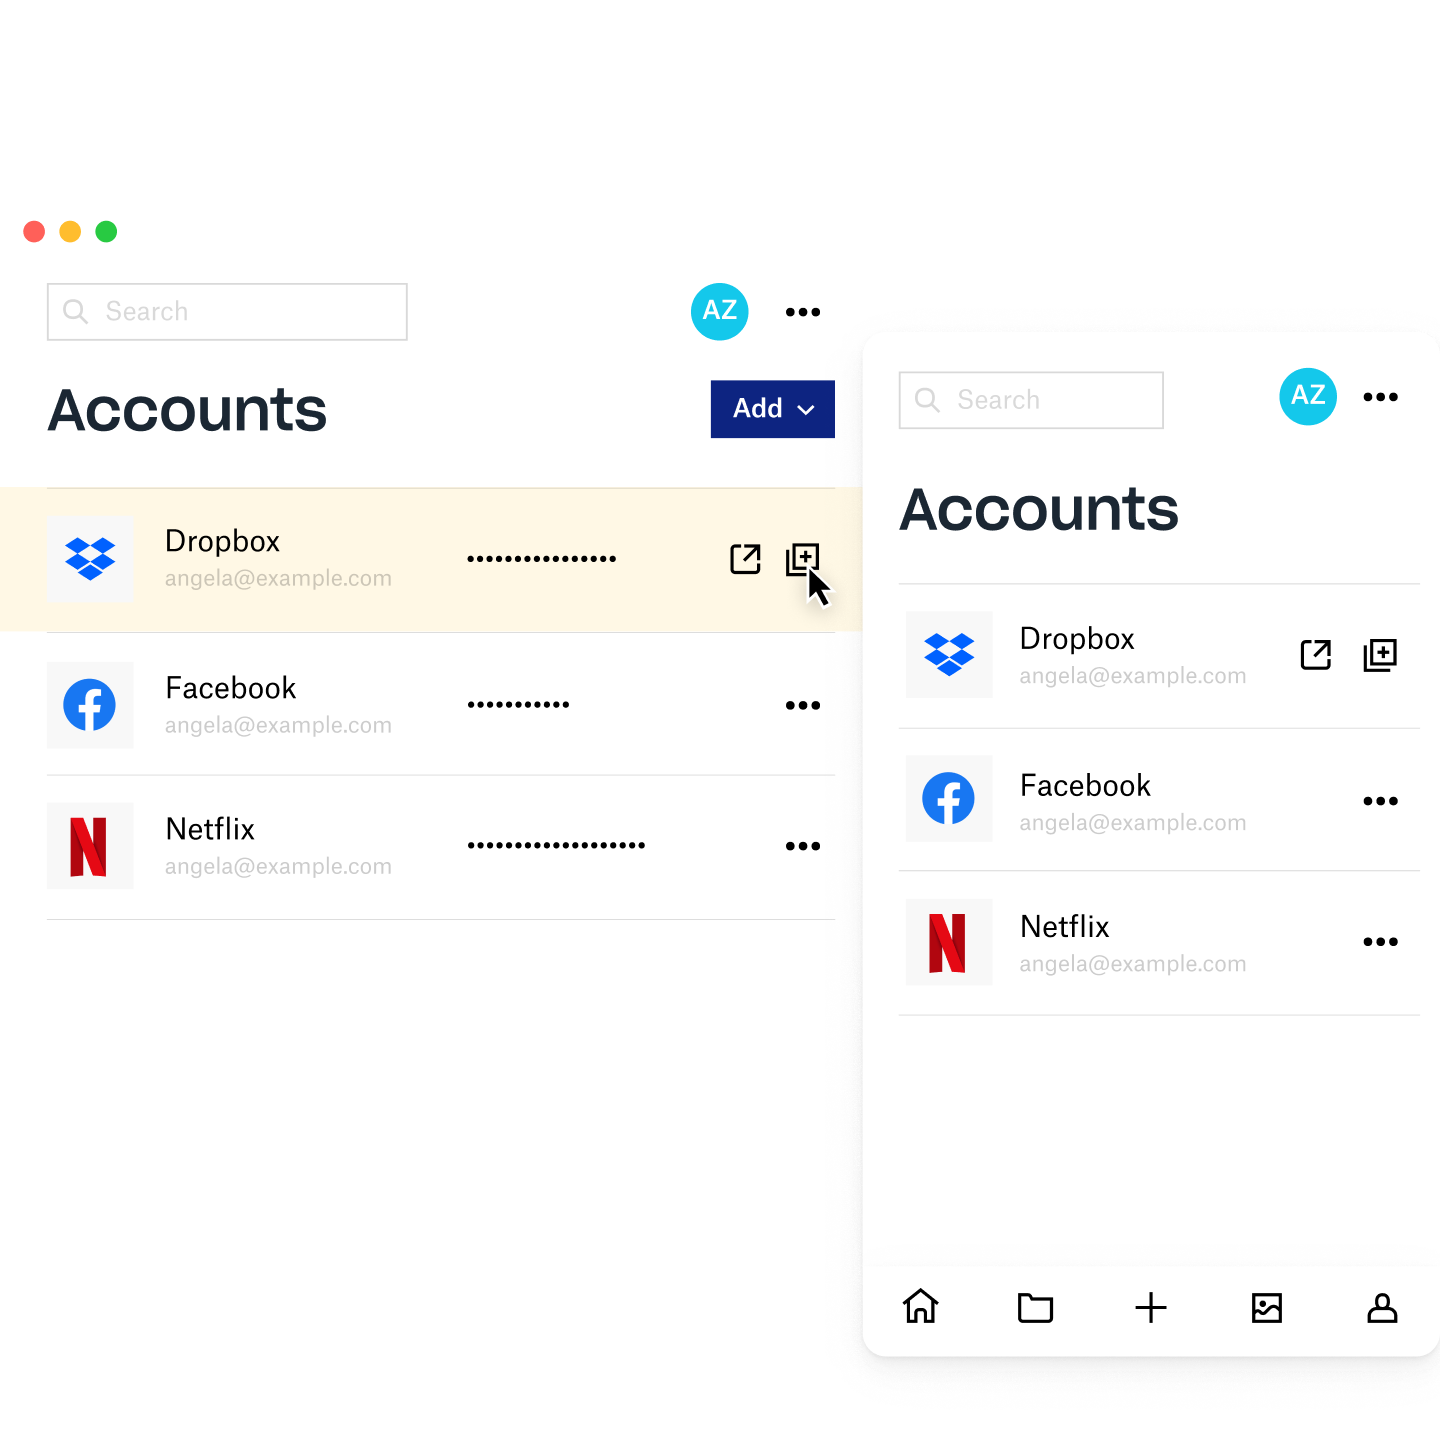 Dropbox Passwords manager screen showing account information for Dropbox, Facebook, and Netflix